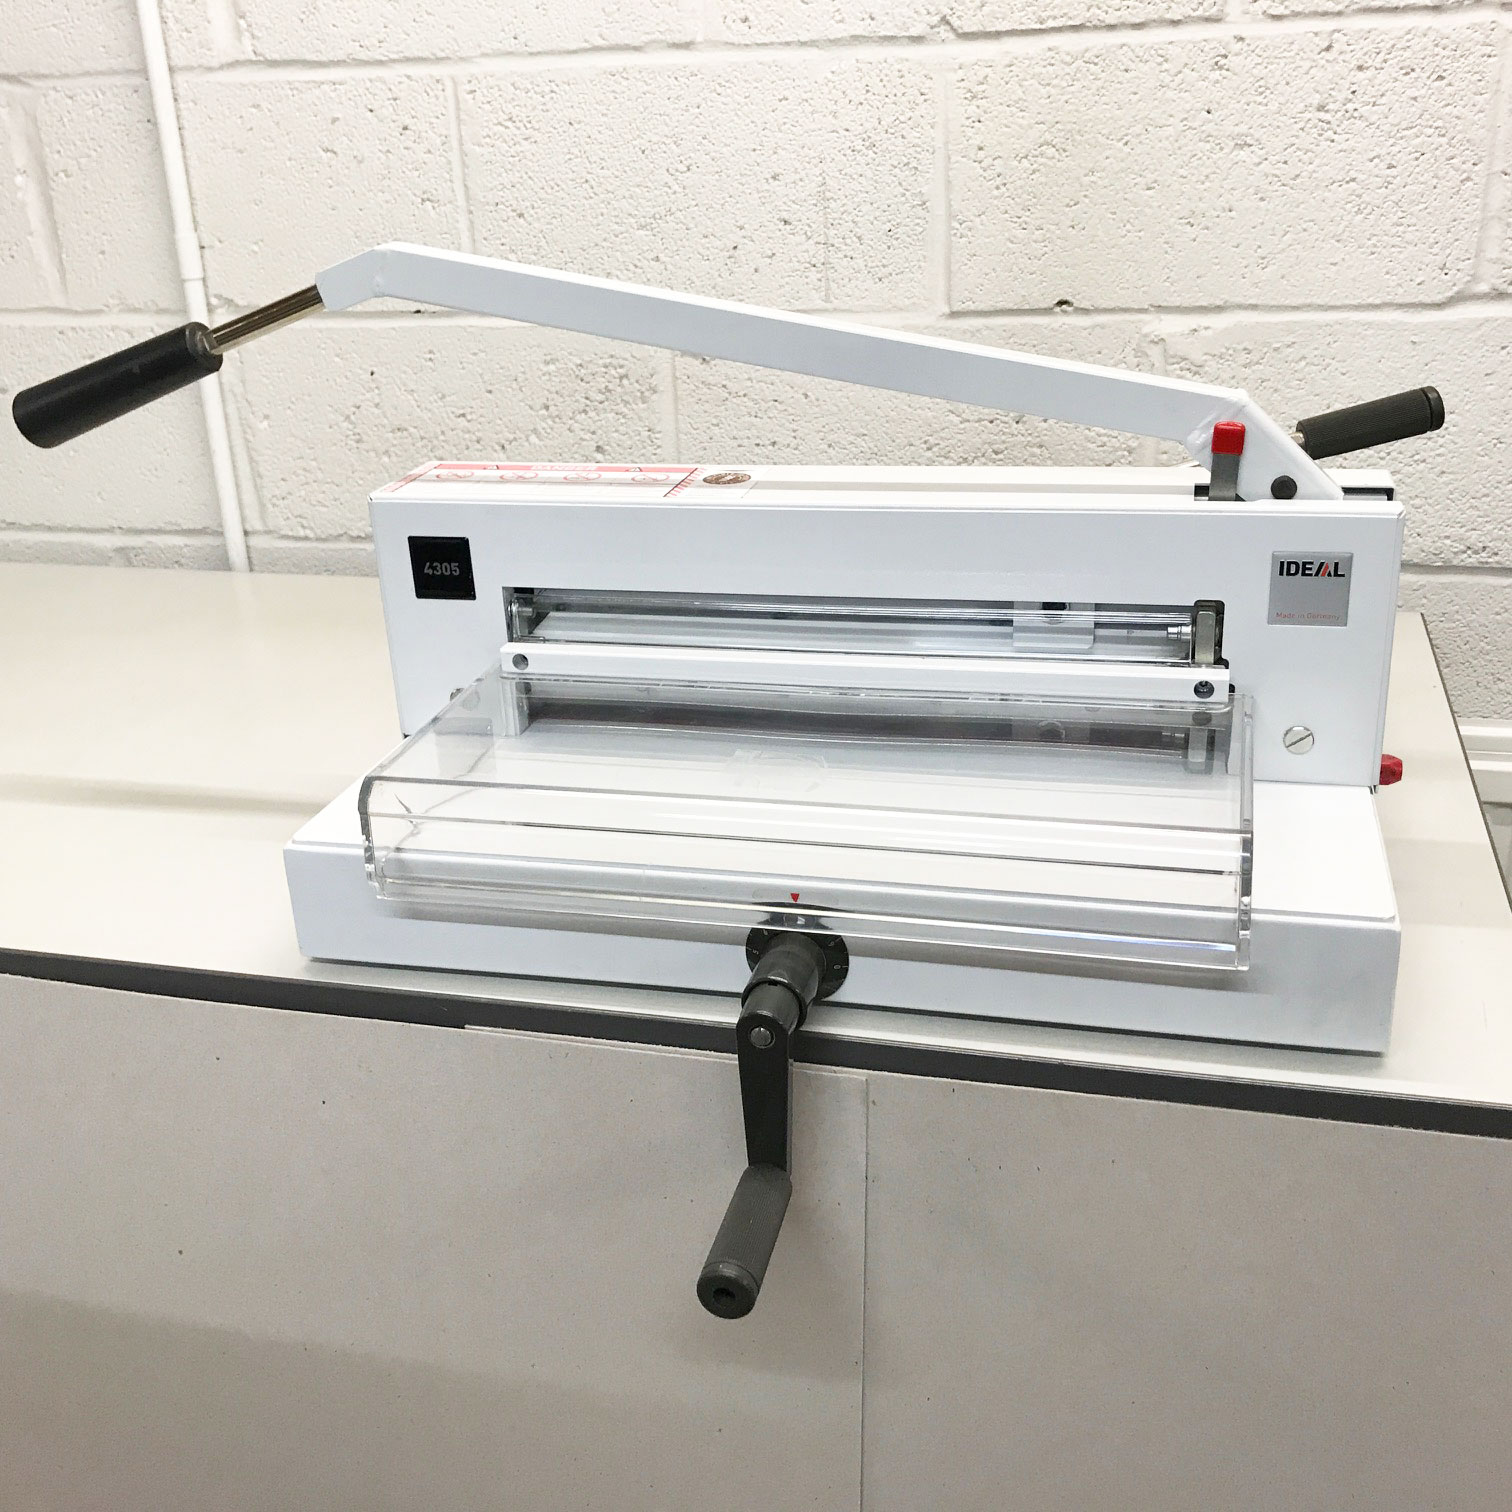 Ex-demo IDEAL 4305 SRA3 Tabletop Guillotine 1104510